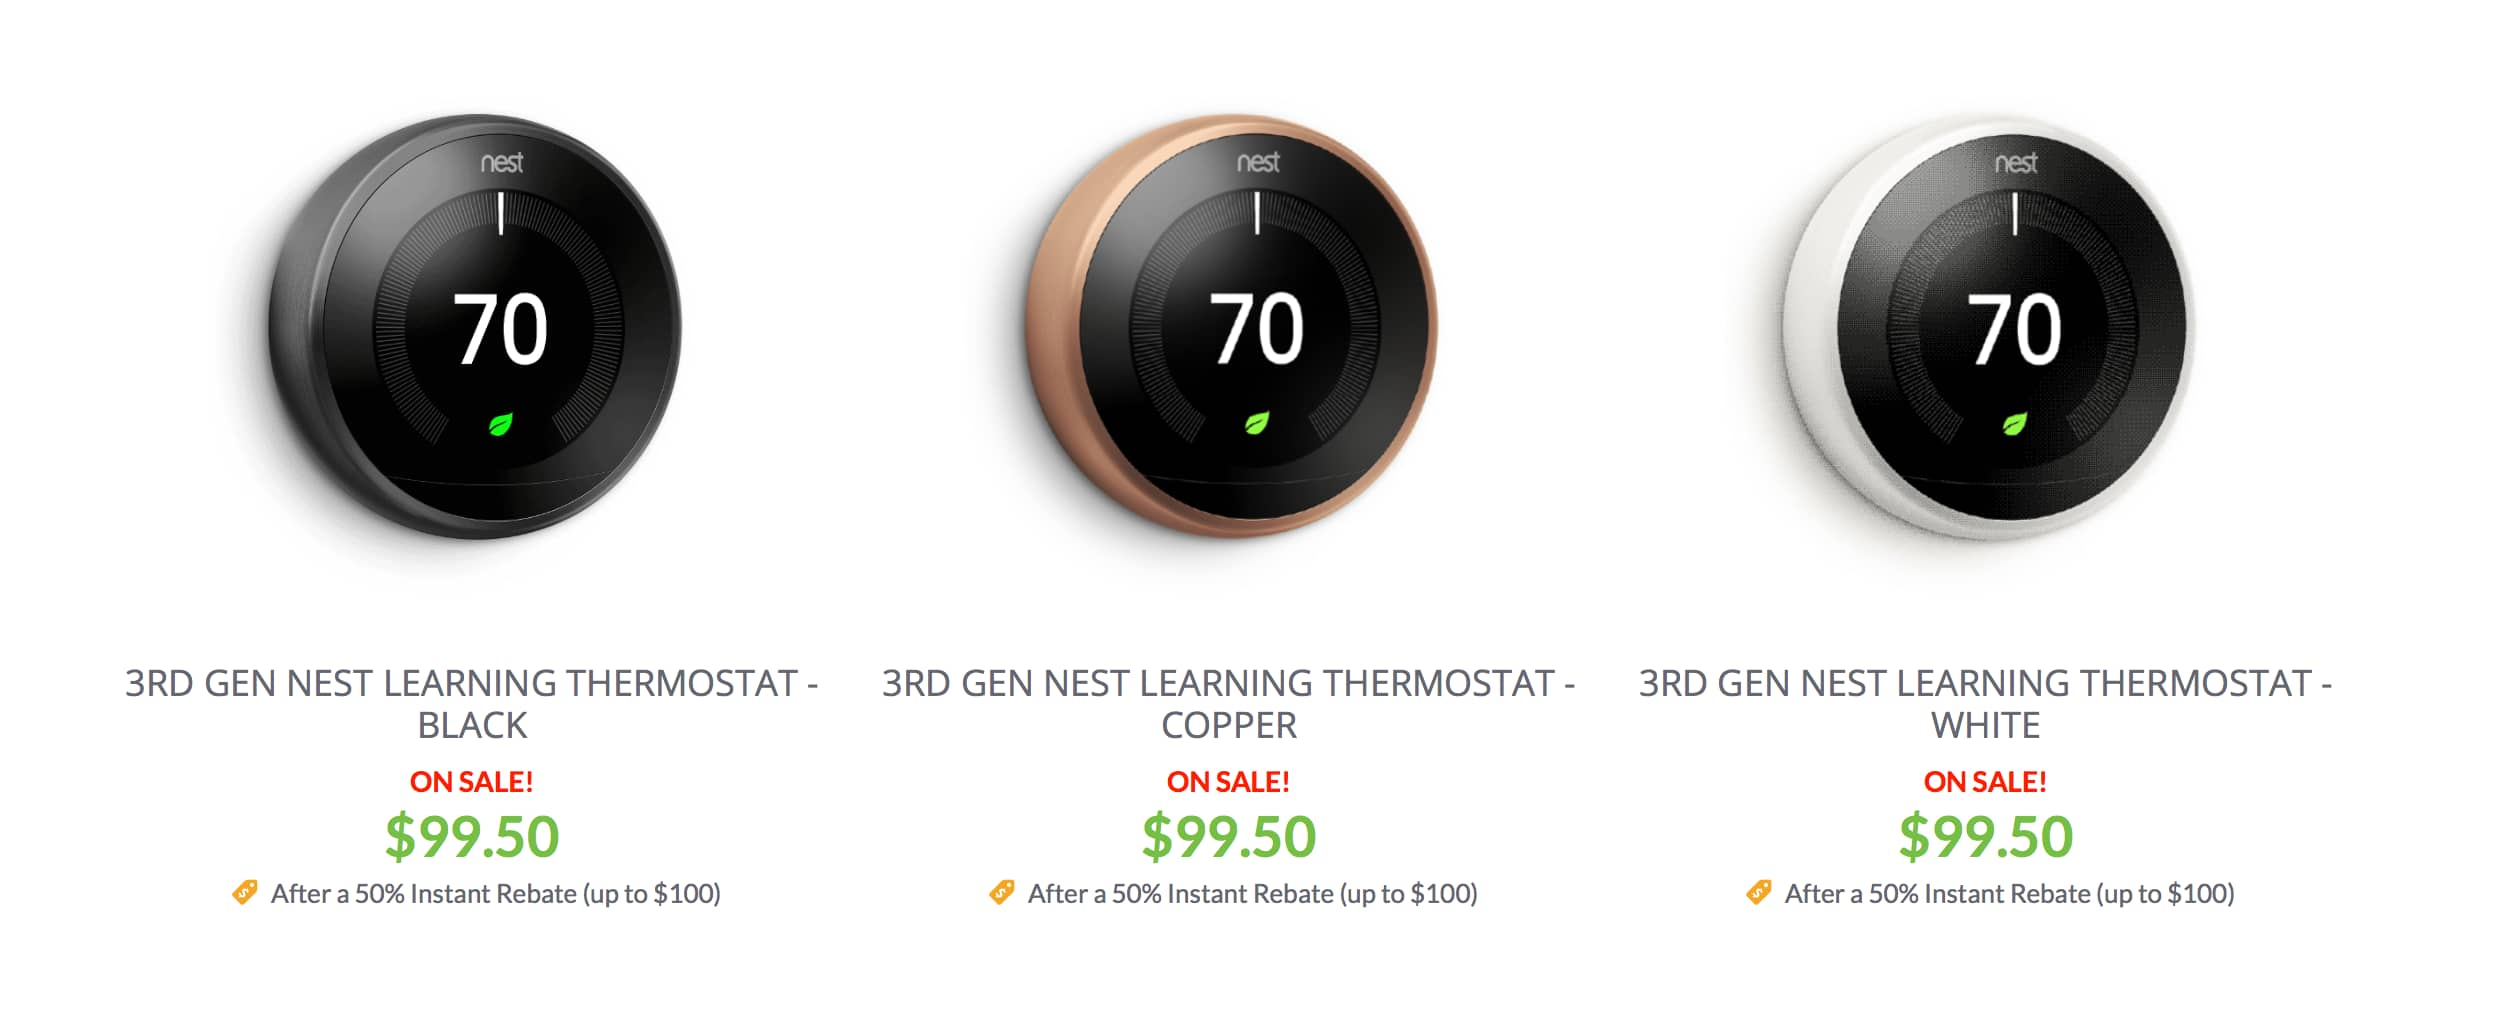 YMMV - Nest 3rd Generation Thermostats - $99 plus taxes after 50% instant rebate.